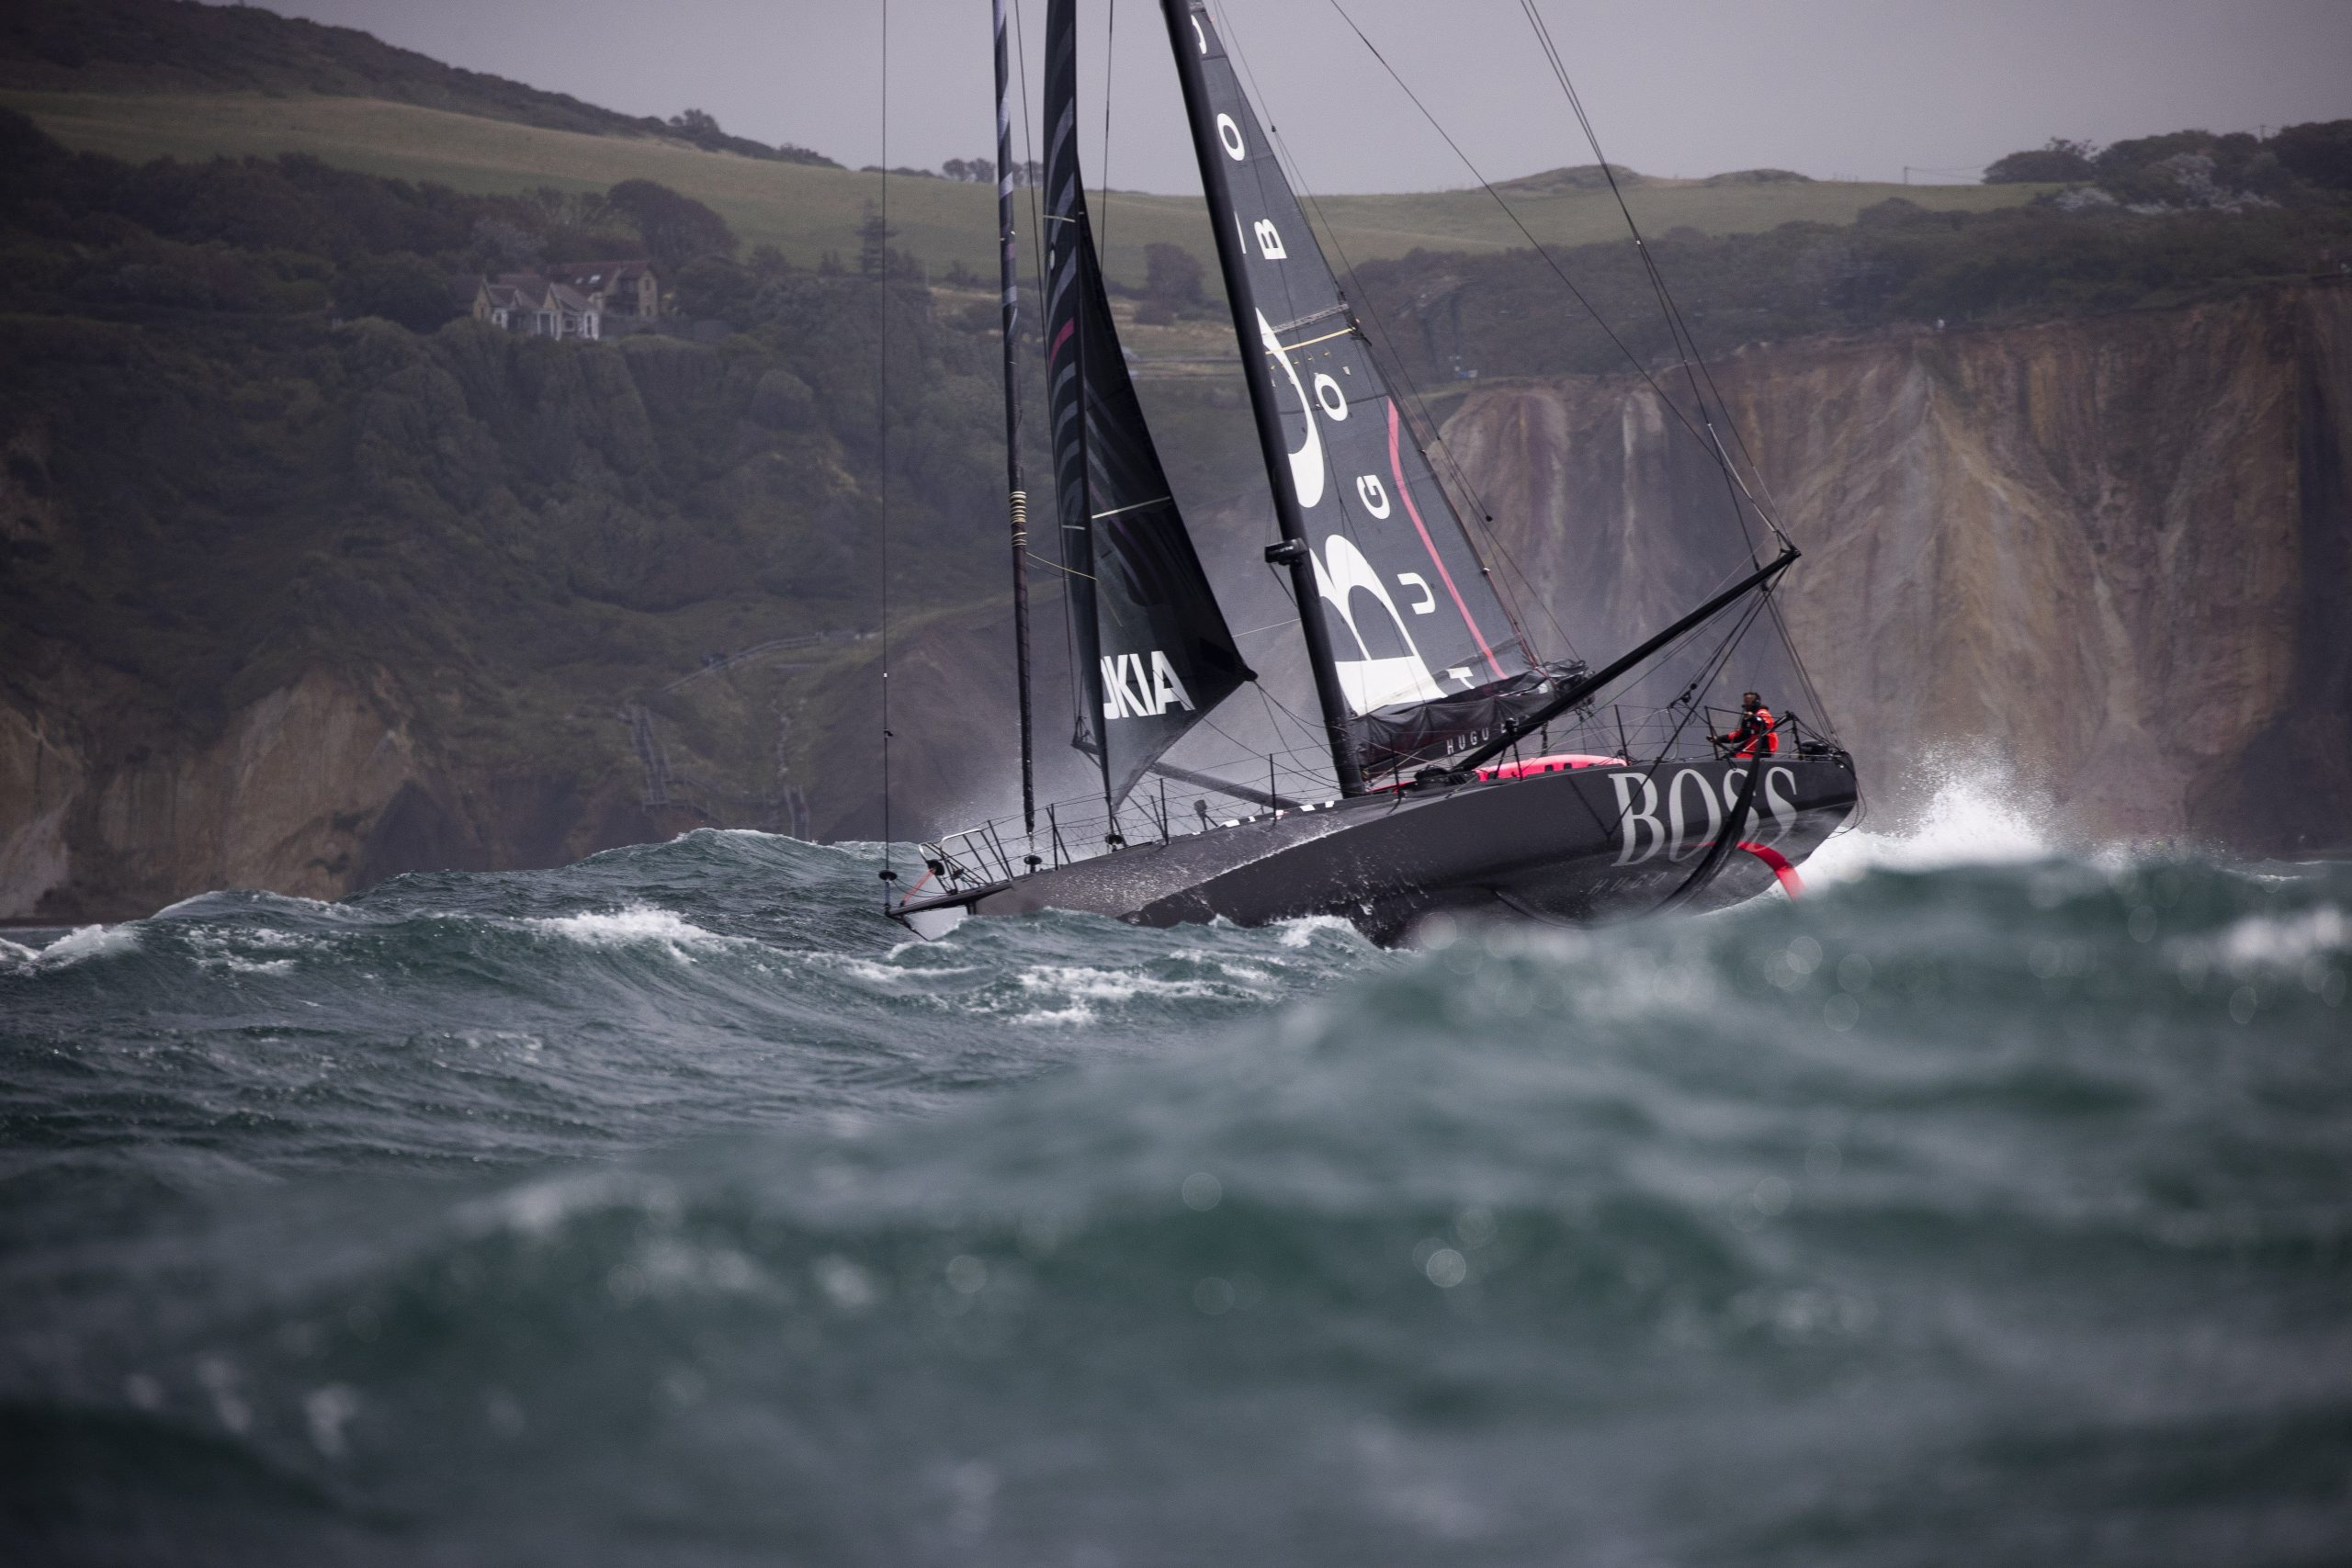 A yacht taking part in the Fastnet Race battles stormy seas near the start line off the Isle of Wight.